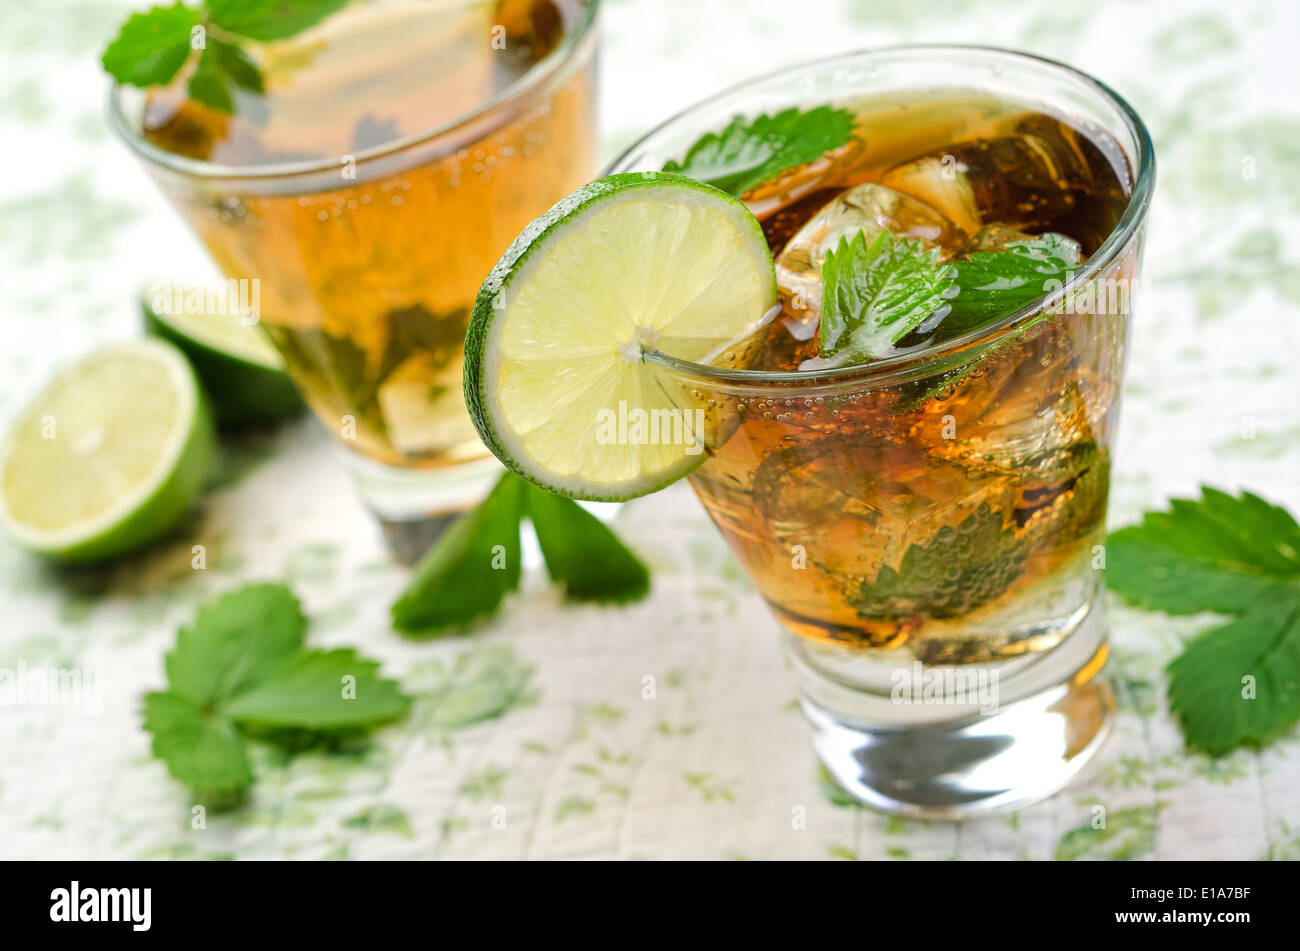 A delicious, refreshing mojito with lime and mint. - Stock Image